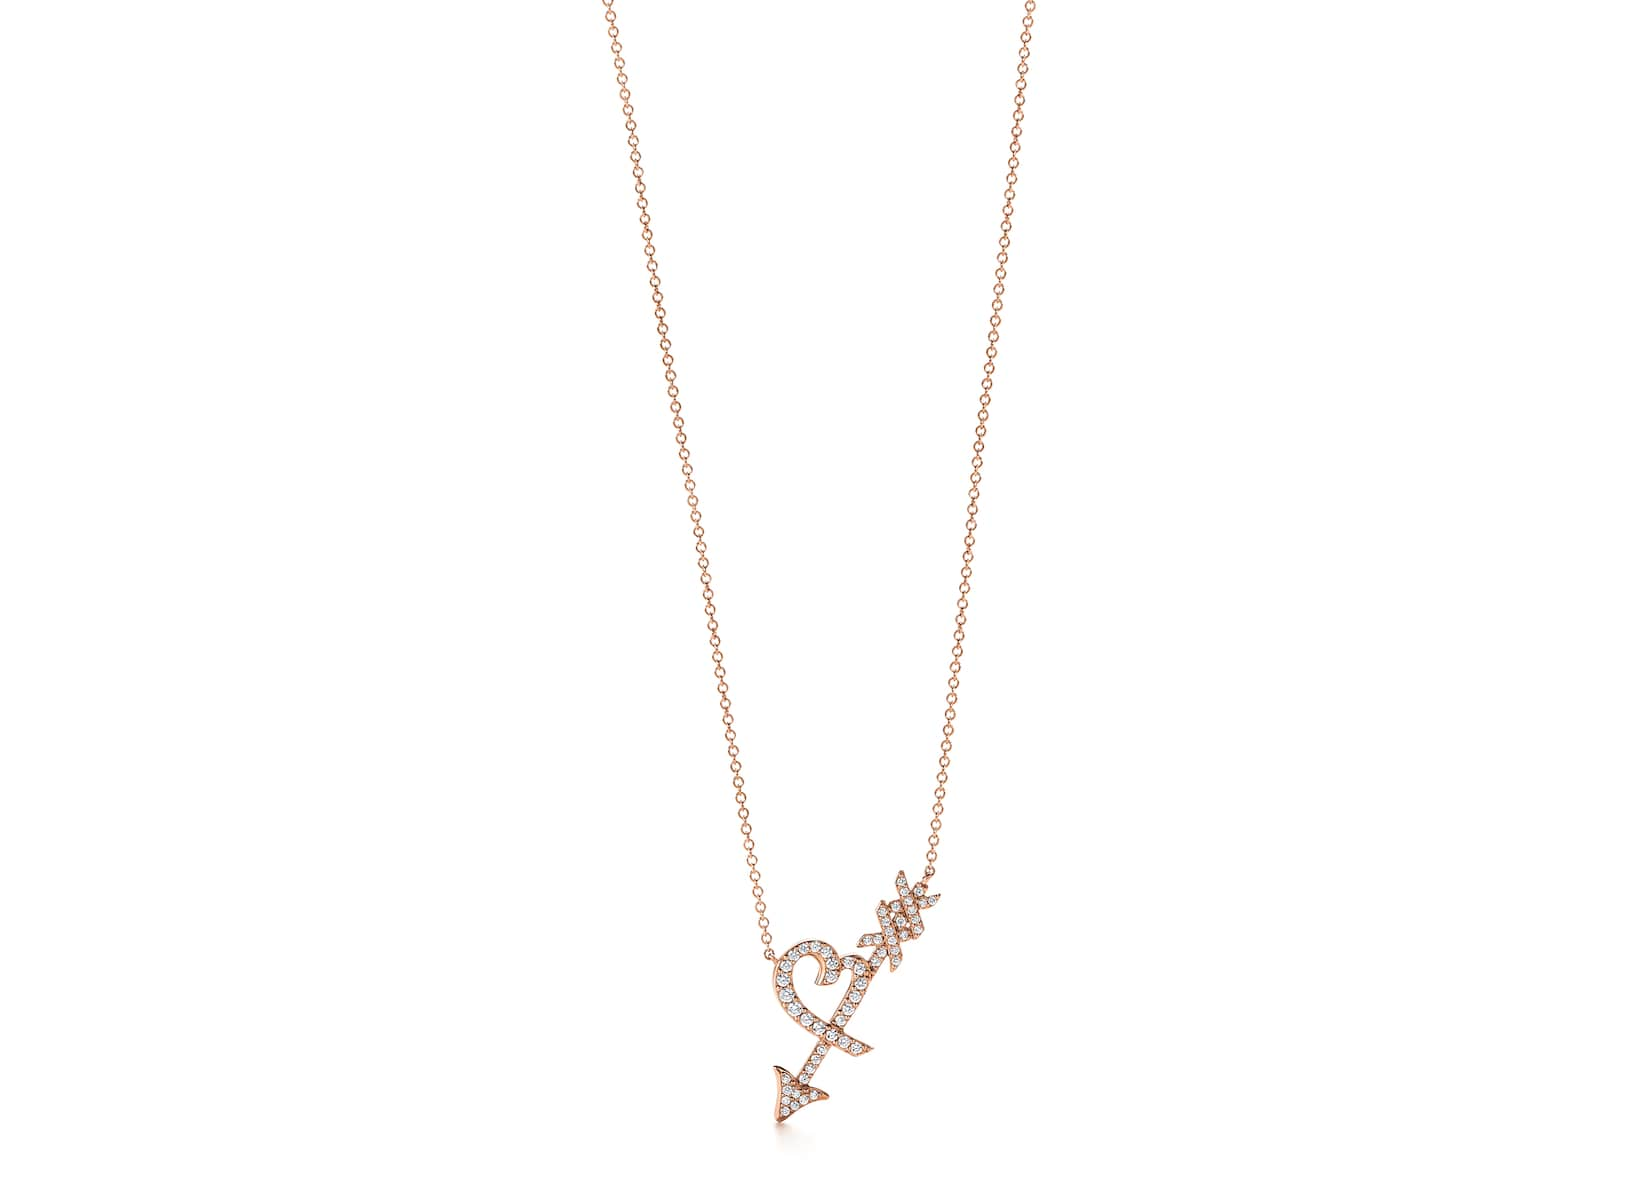 Paloma-Picasso®-Graffiti-Heart-and-Arrow-pendant-diamonds-in-18k-rose-gold